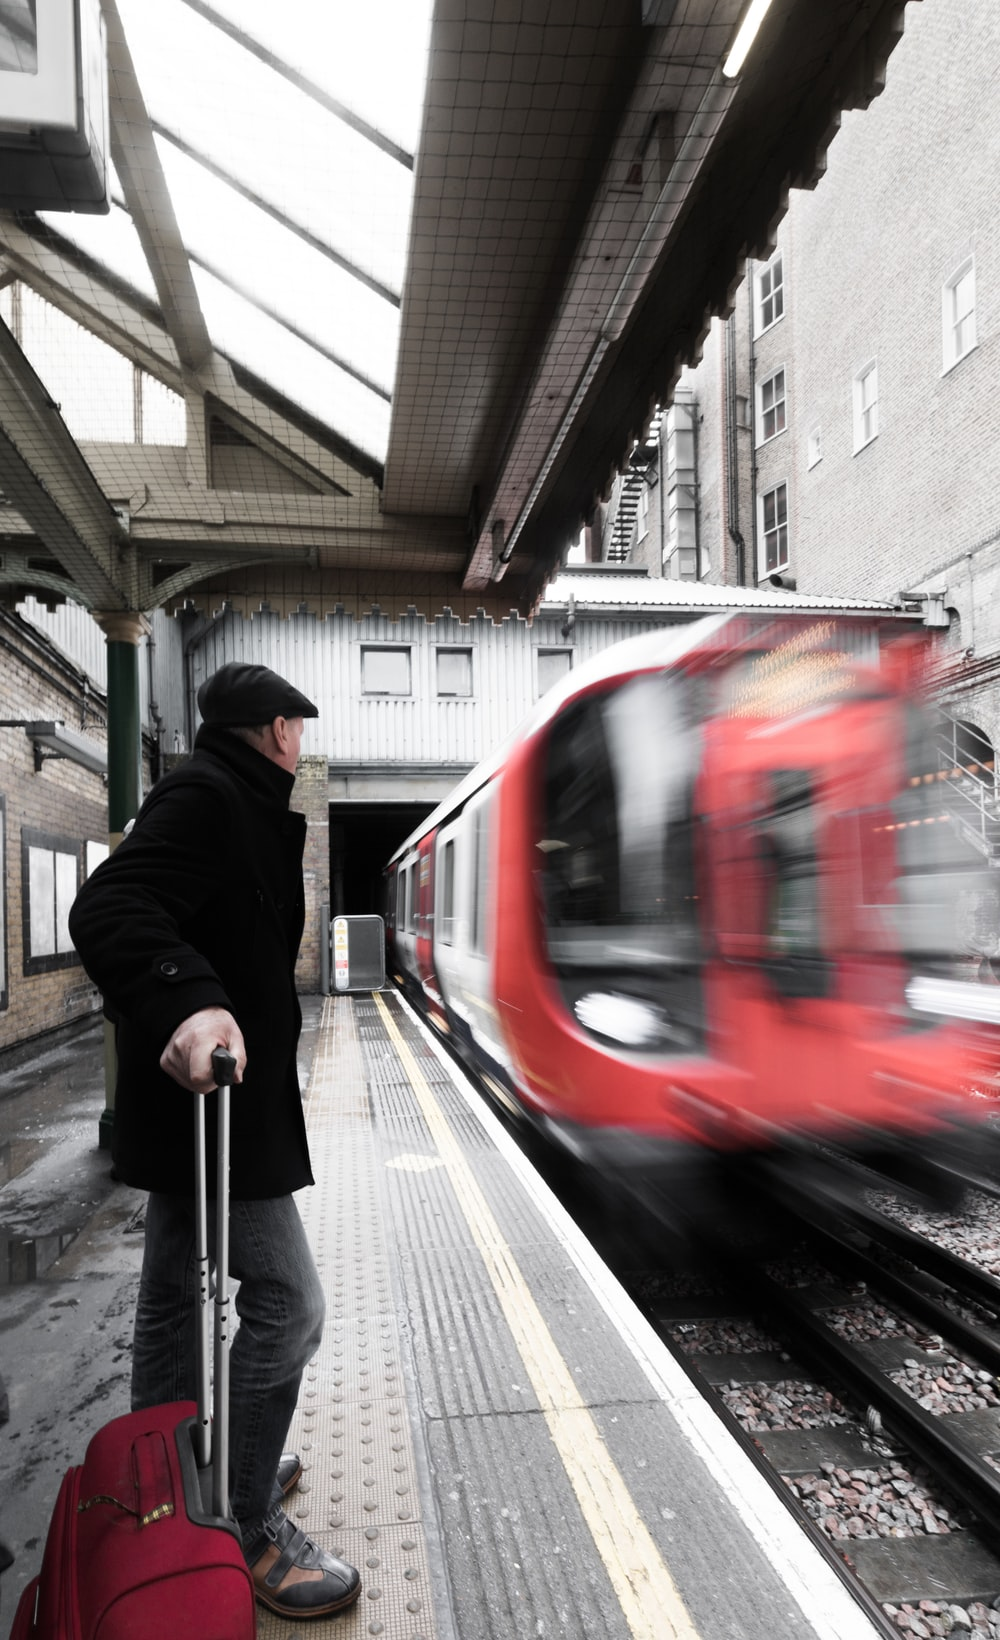 man holding luggage waiting on railway with red train passing by